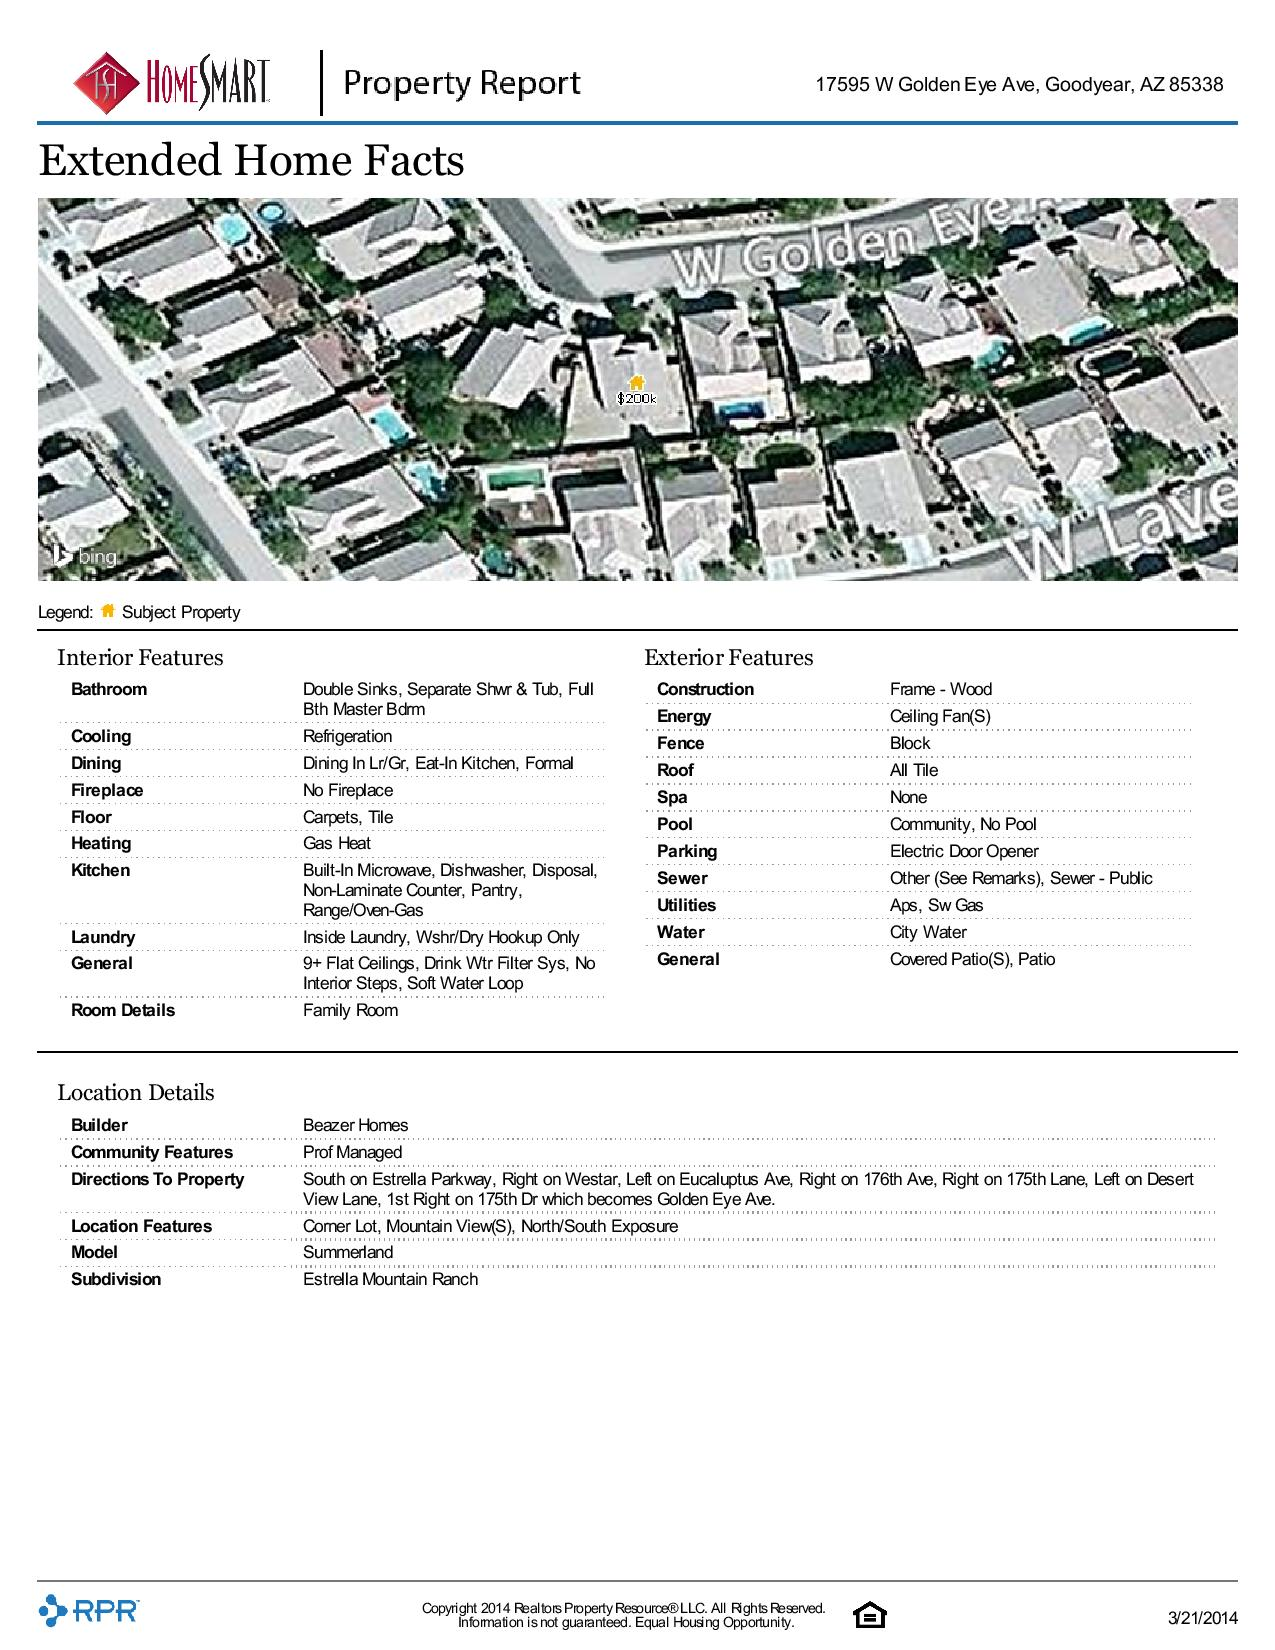 17595-W-Golden-Eye-Ave-Goodyear-AZ-85338-page-004